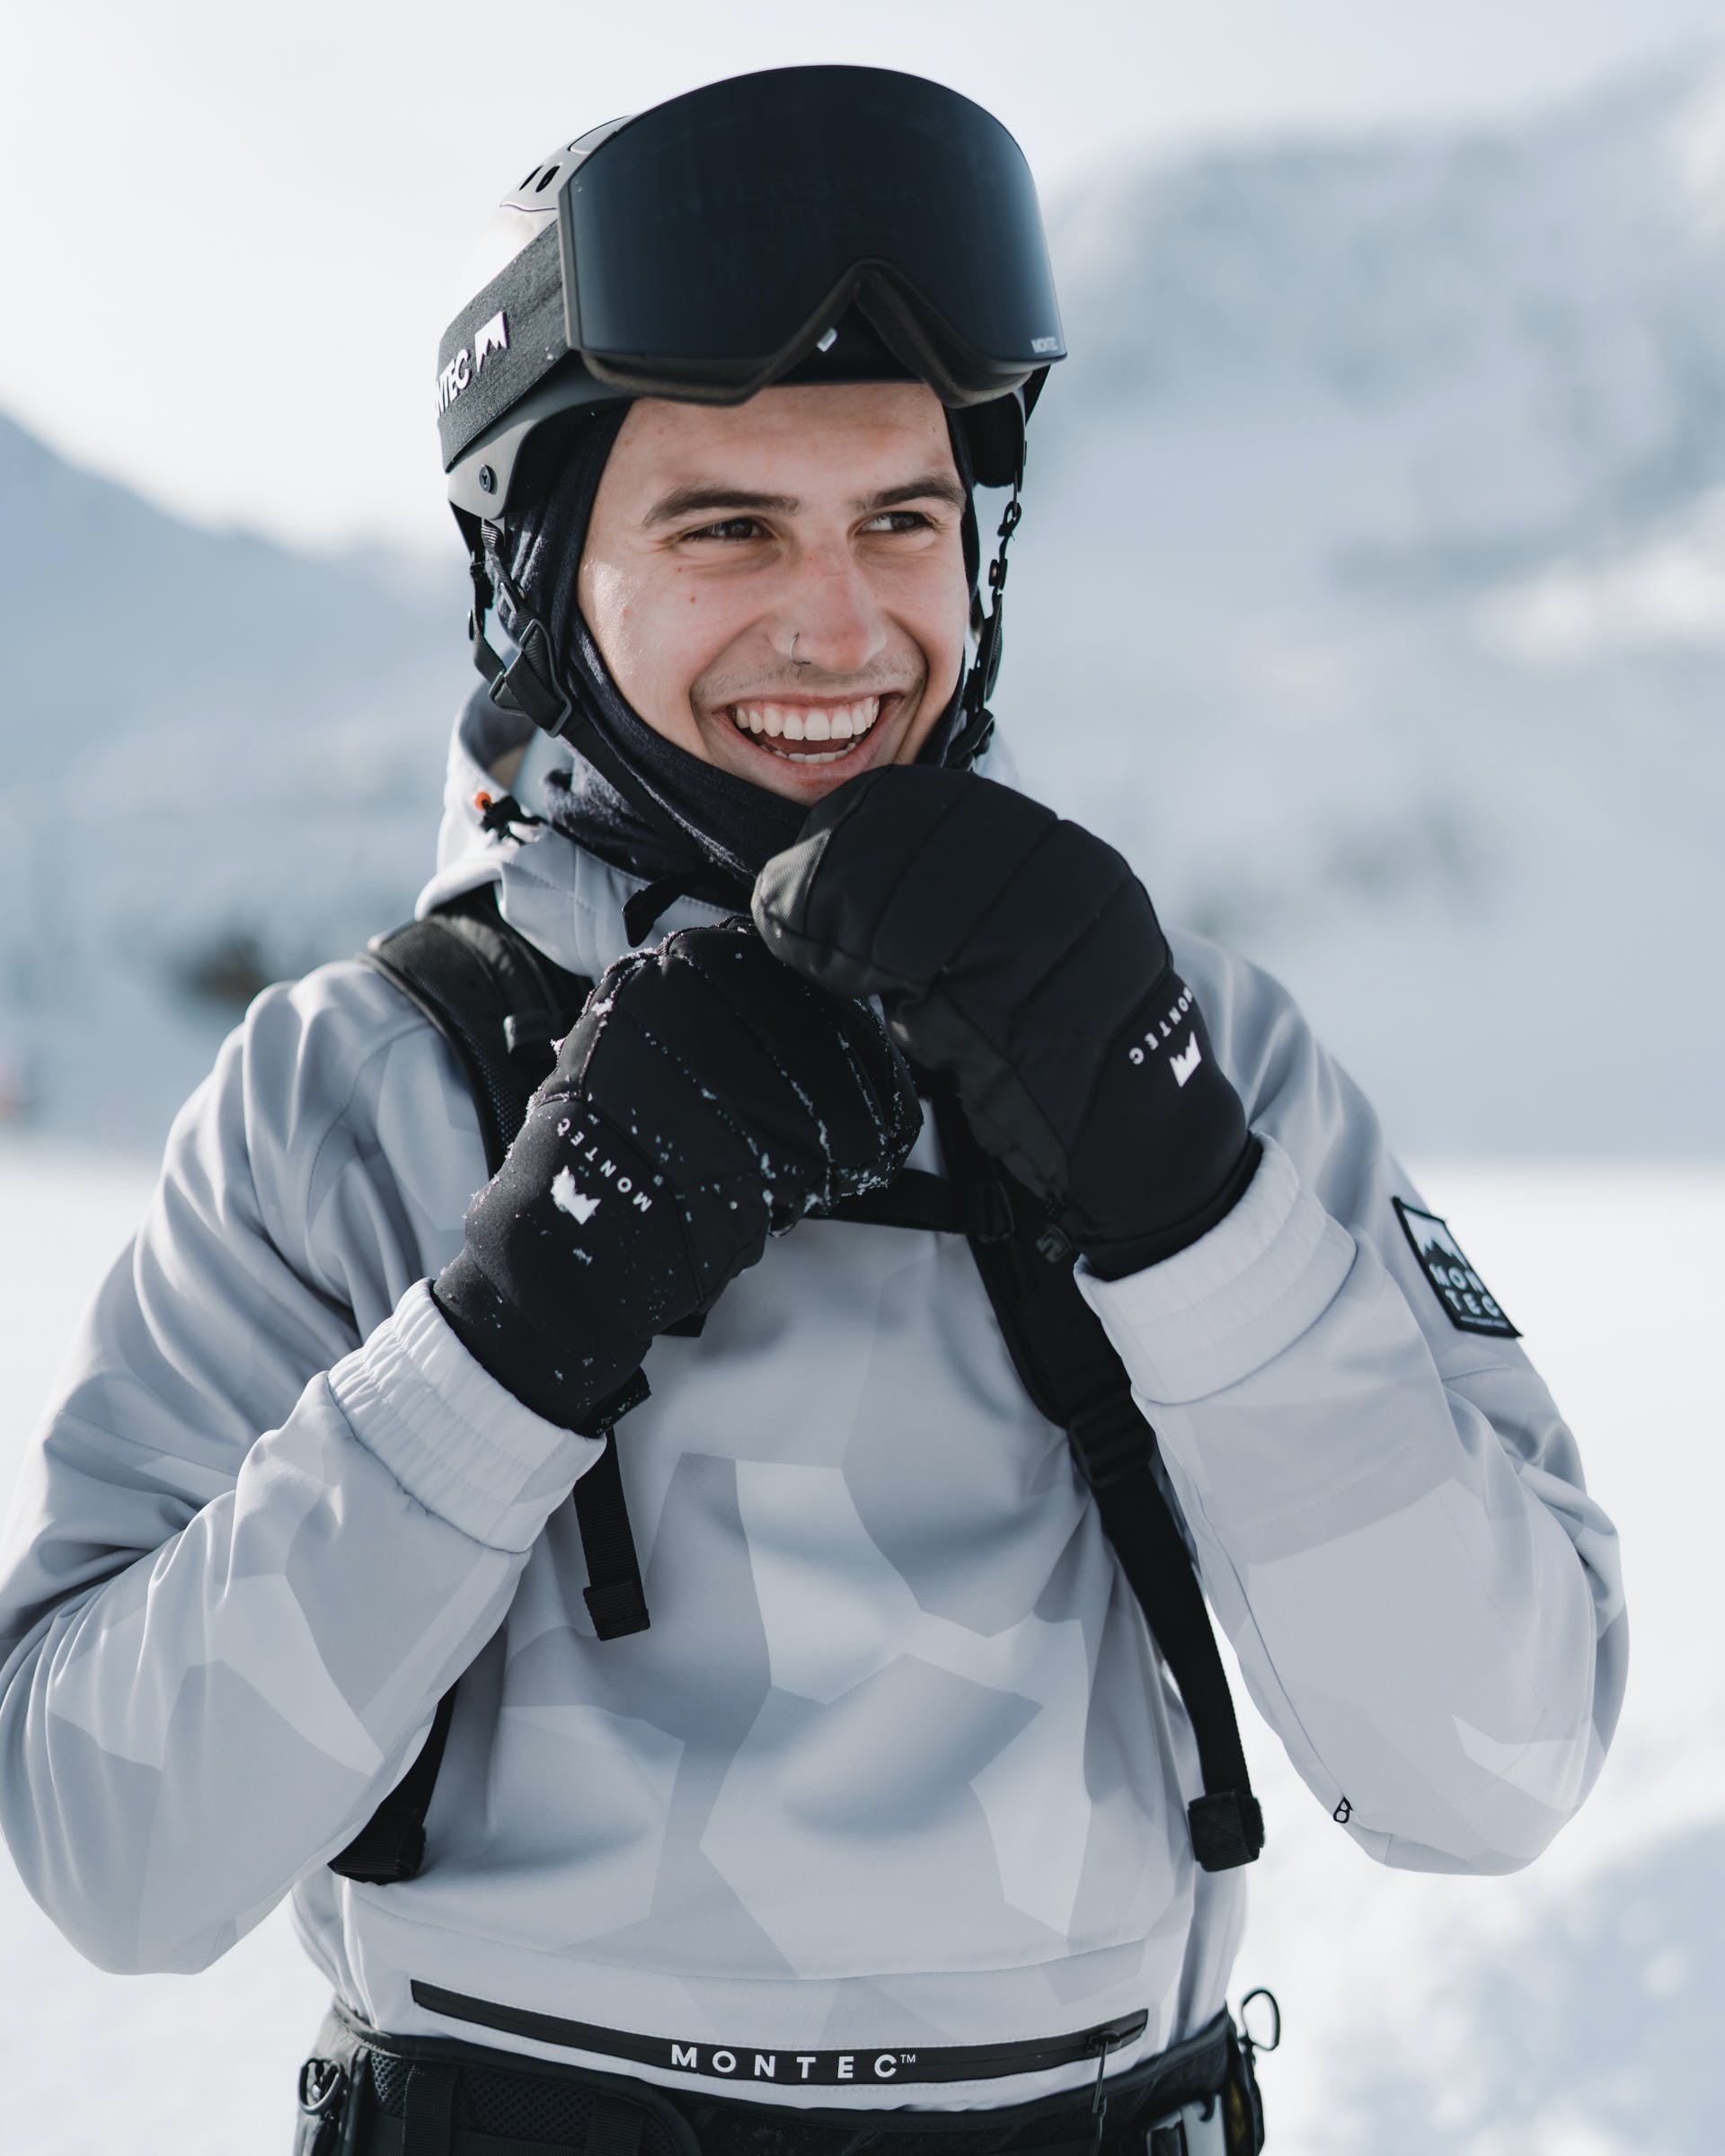 Protective skiing equipment and ski outerwear: Gear guide